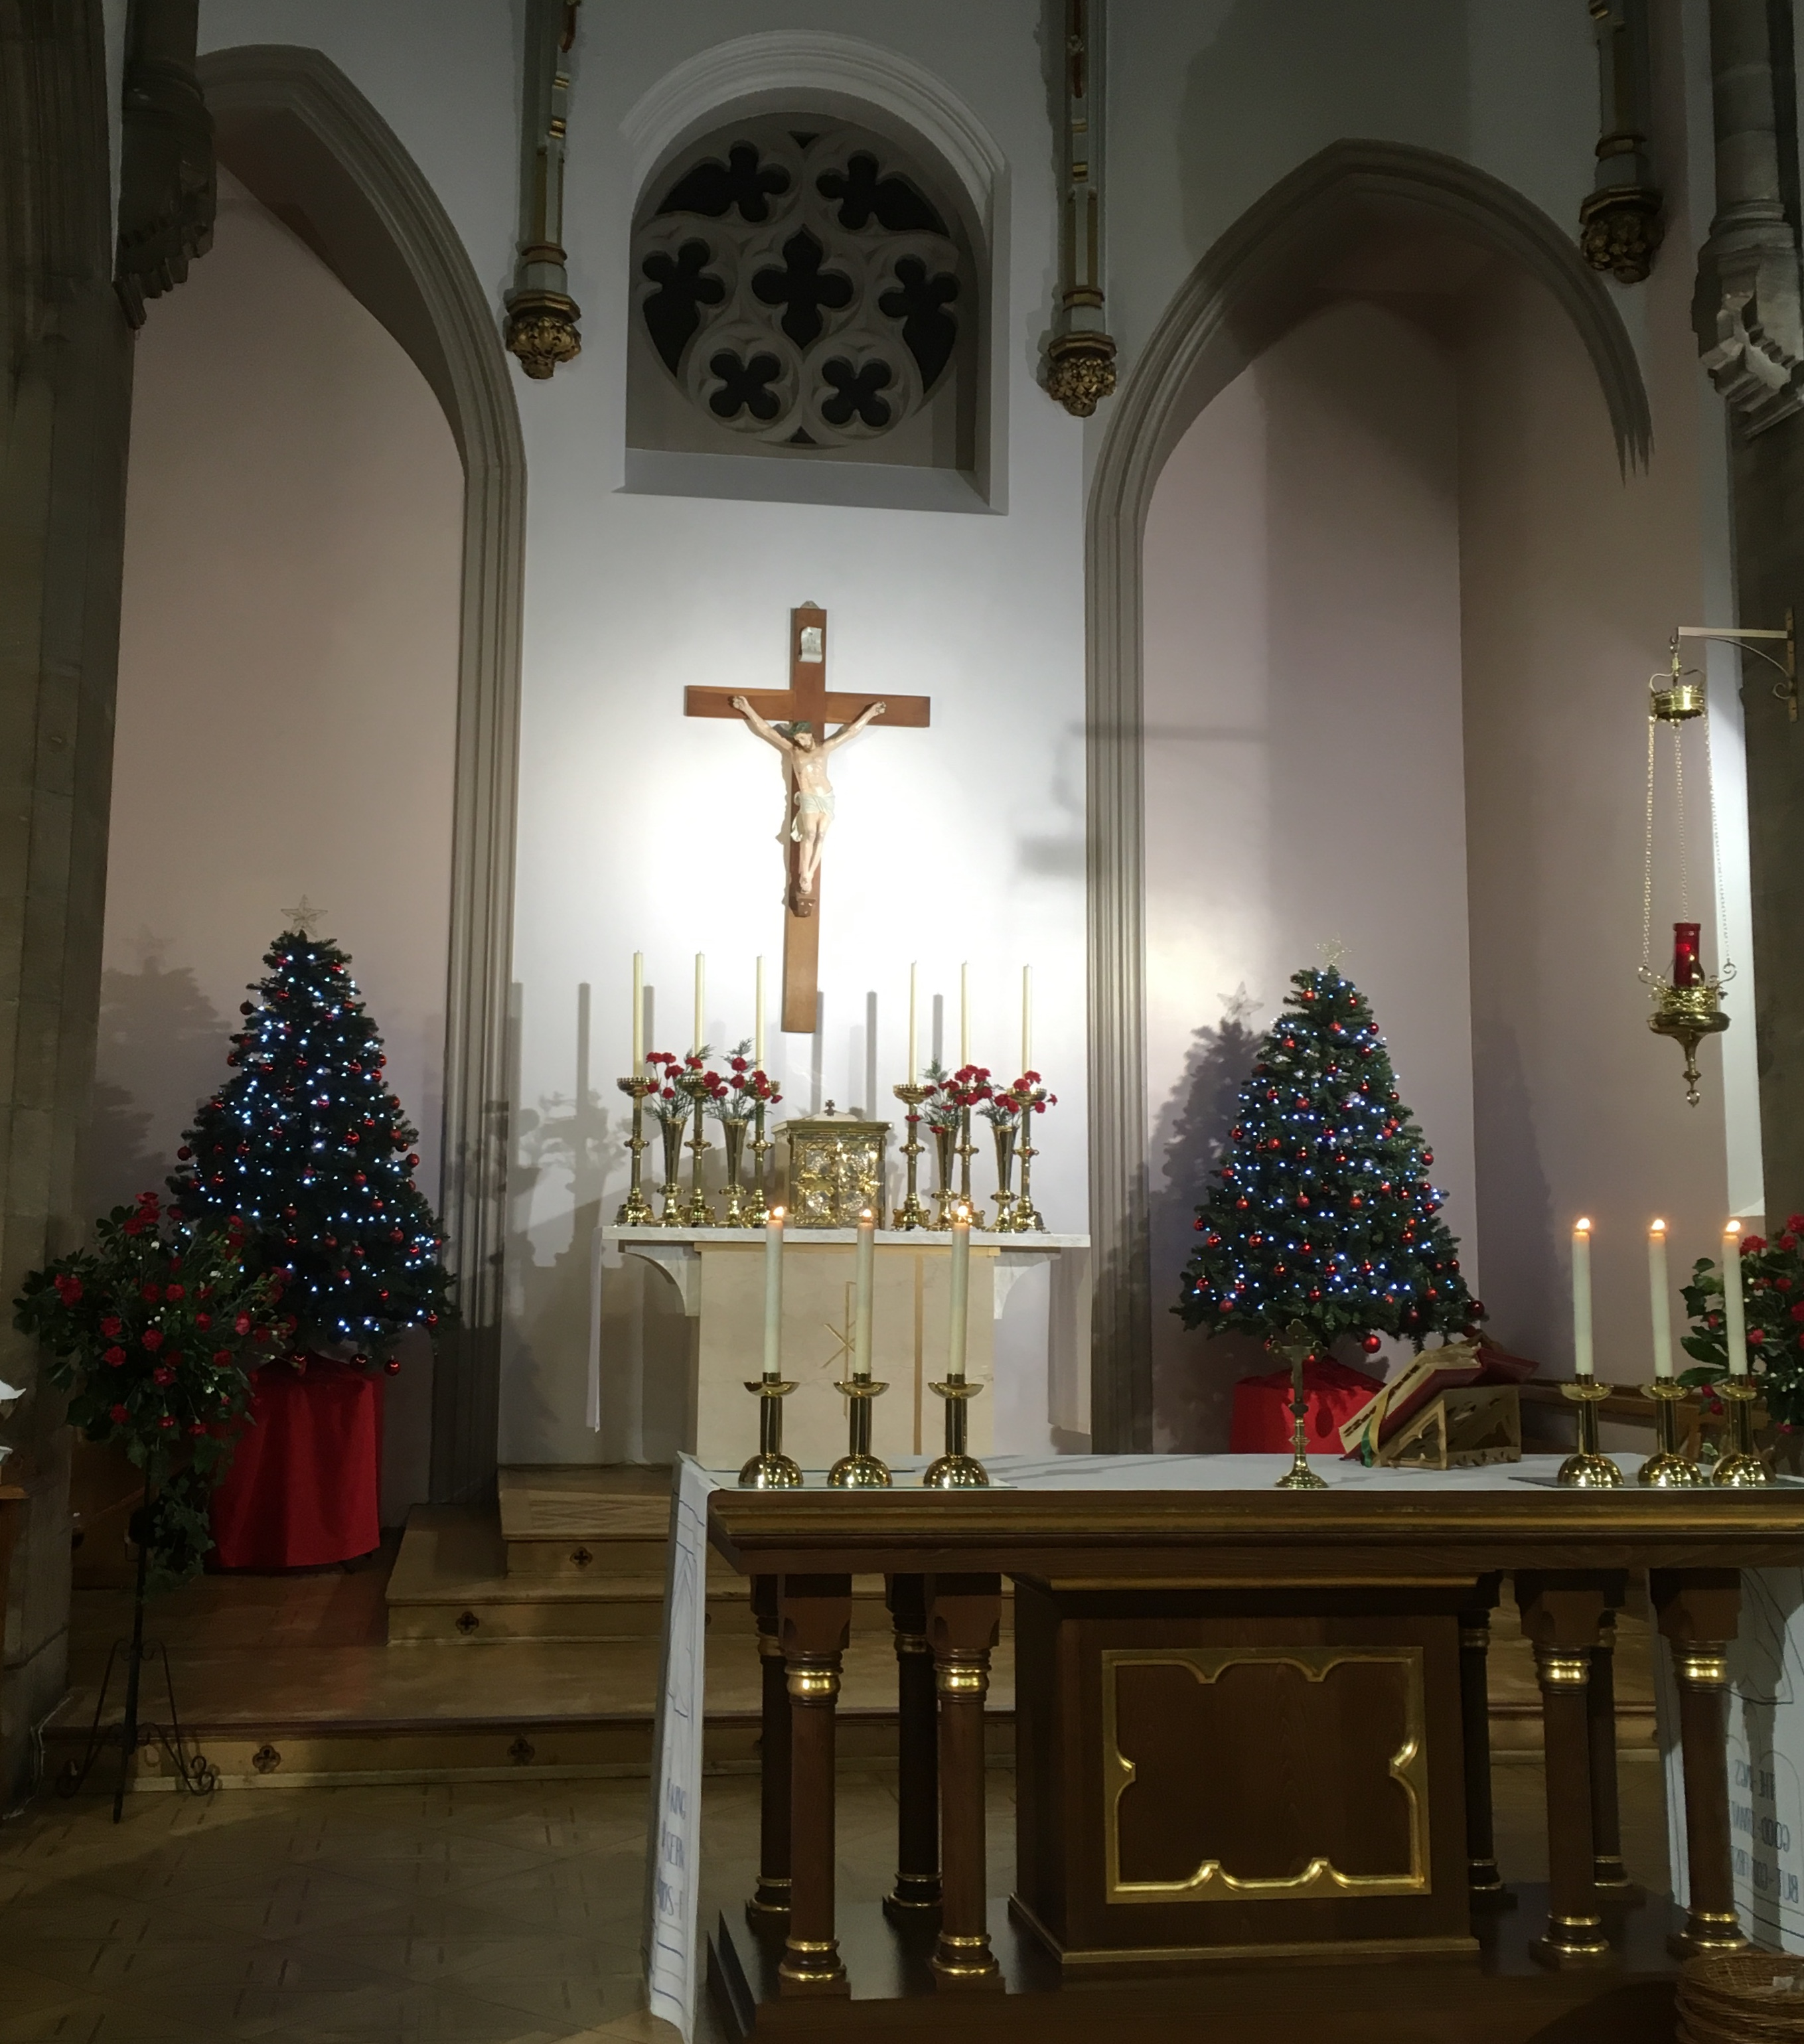 Merry Christmas and a happy new year from all at the Parish of St. Charles and St. Thomas More